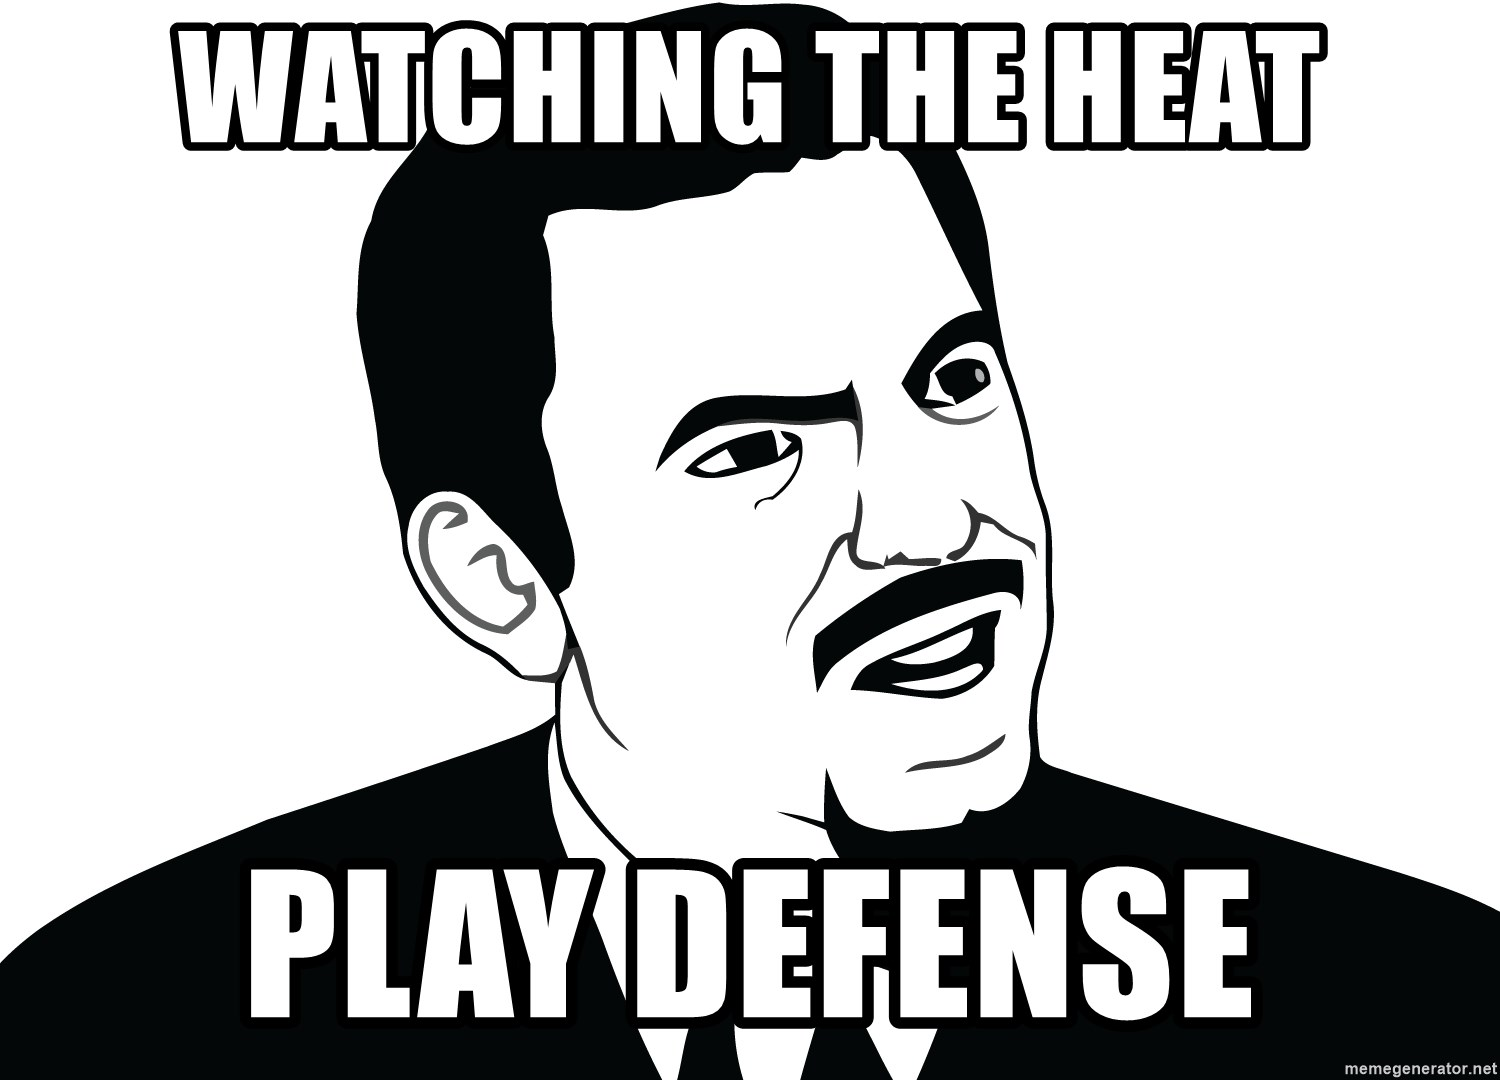 Are you serious face  - WATCHING THE HEAT PLAY DEFENSE